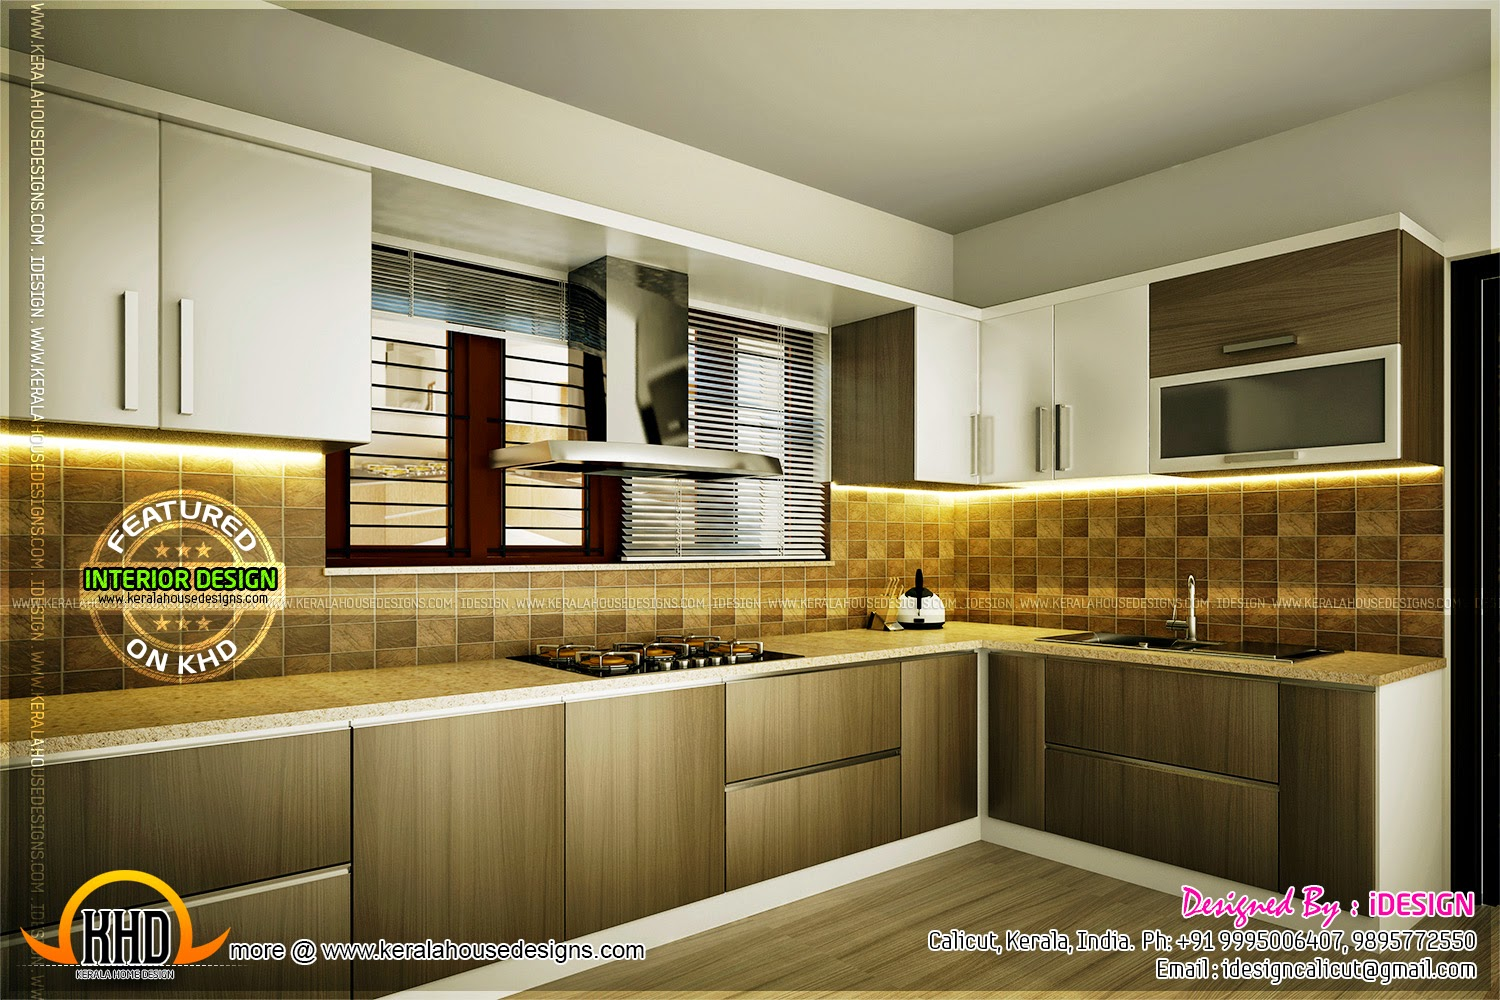 Kitchen master bedroom living interiors home kerala plans - Masters in interior design online ...